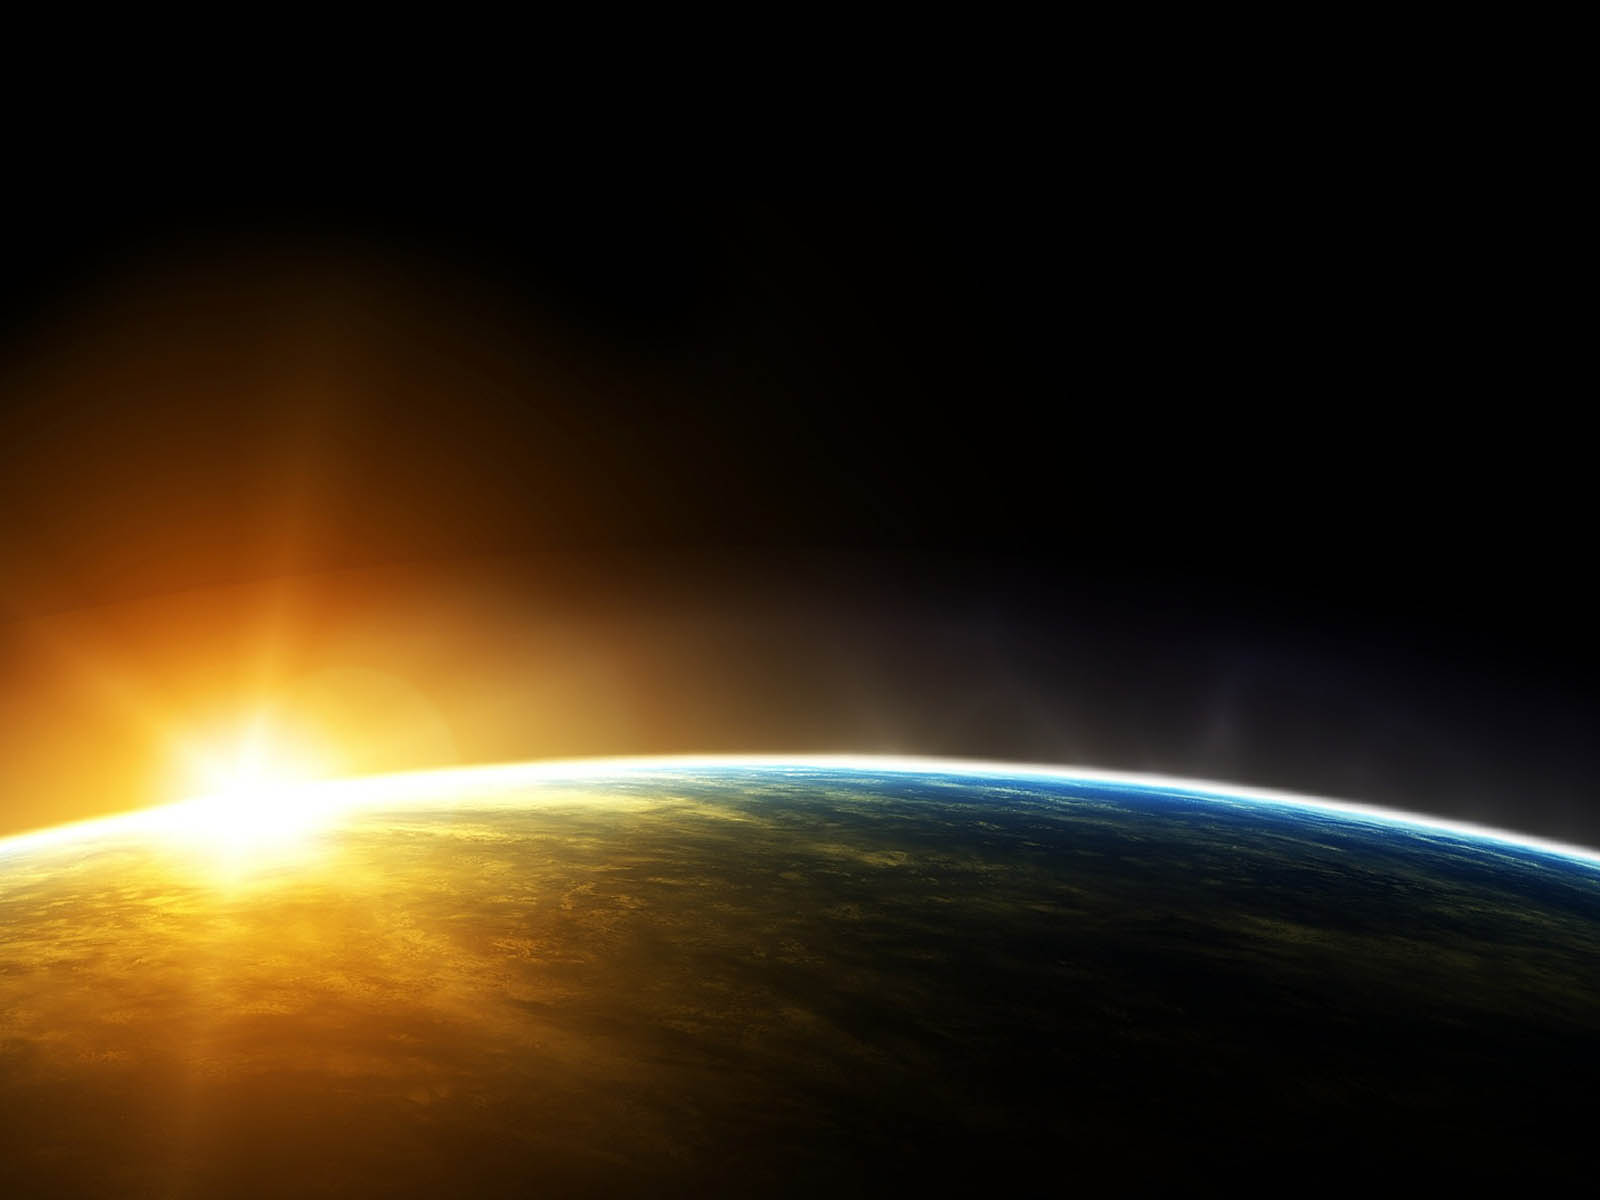 Tag: Sunrise In Space Wallpapers, Images, Photos, Pictures and